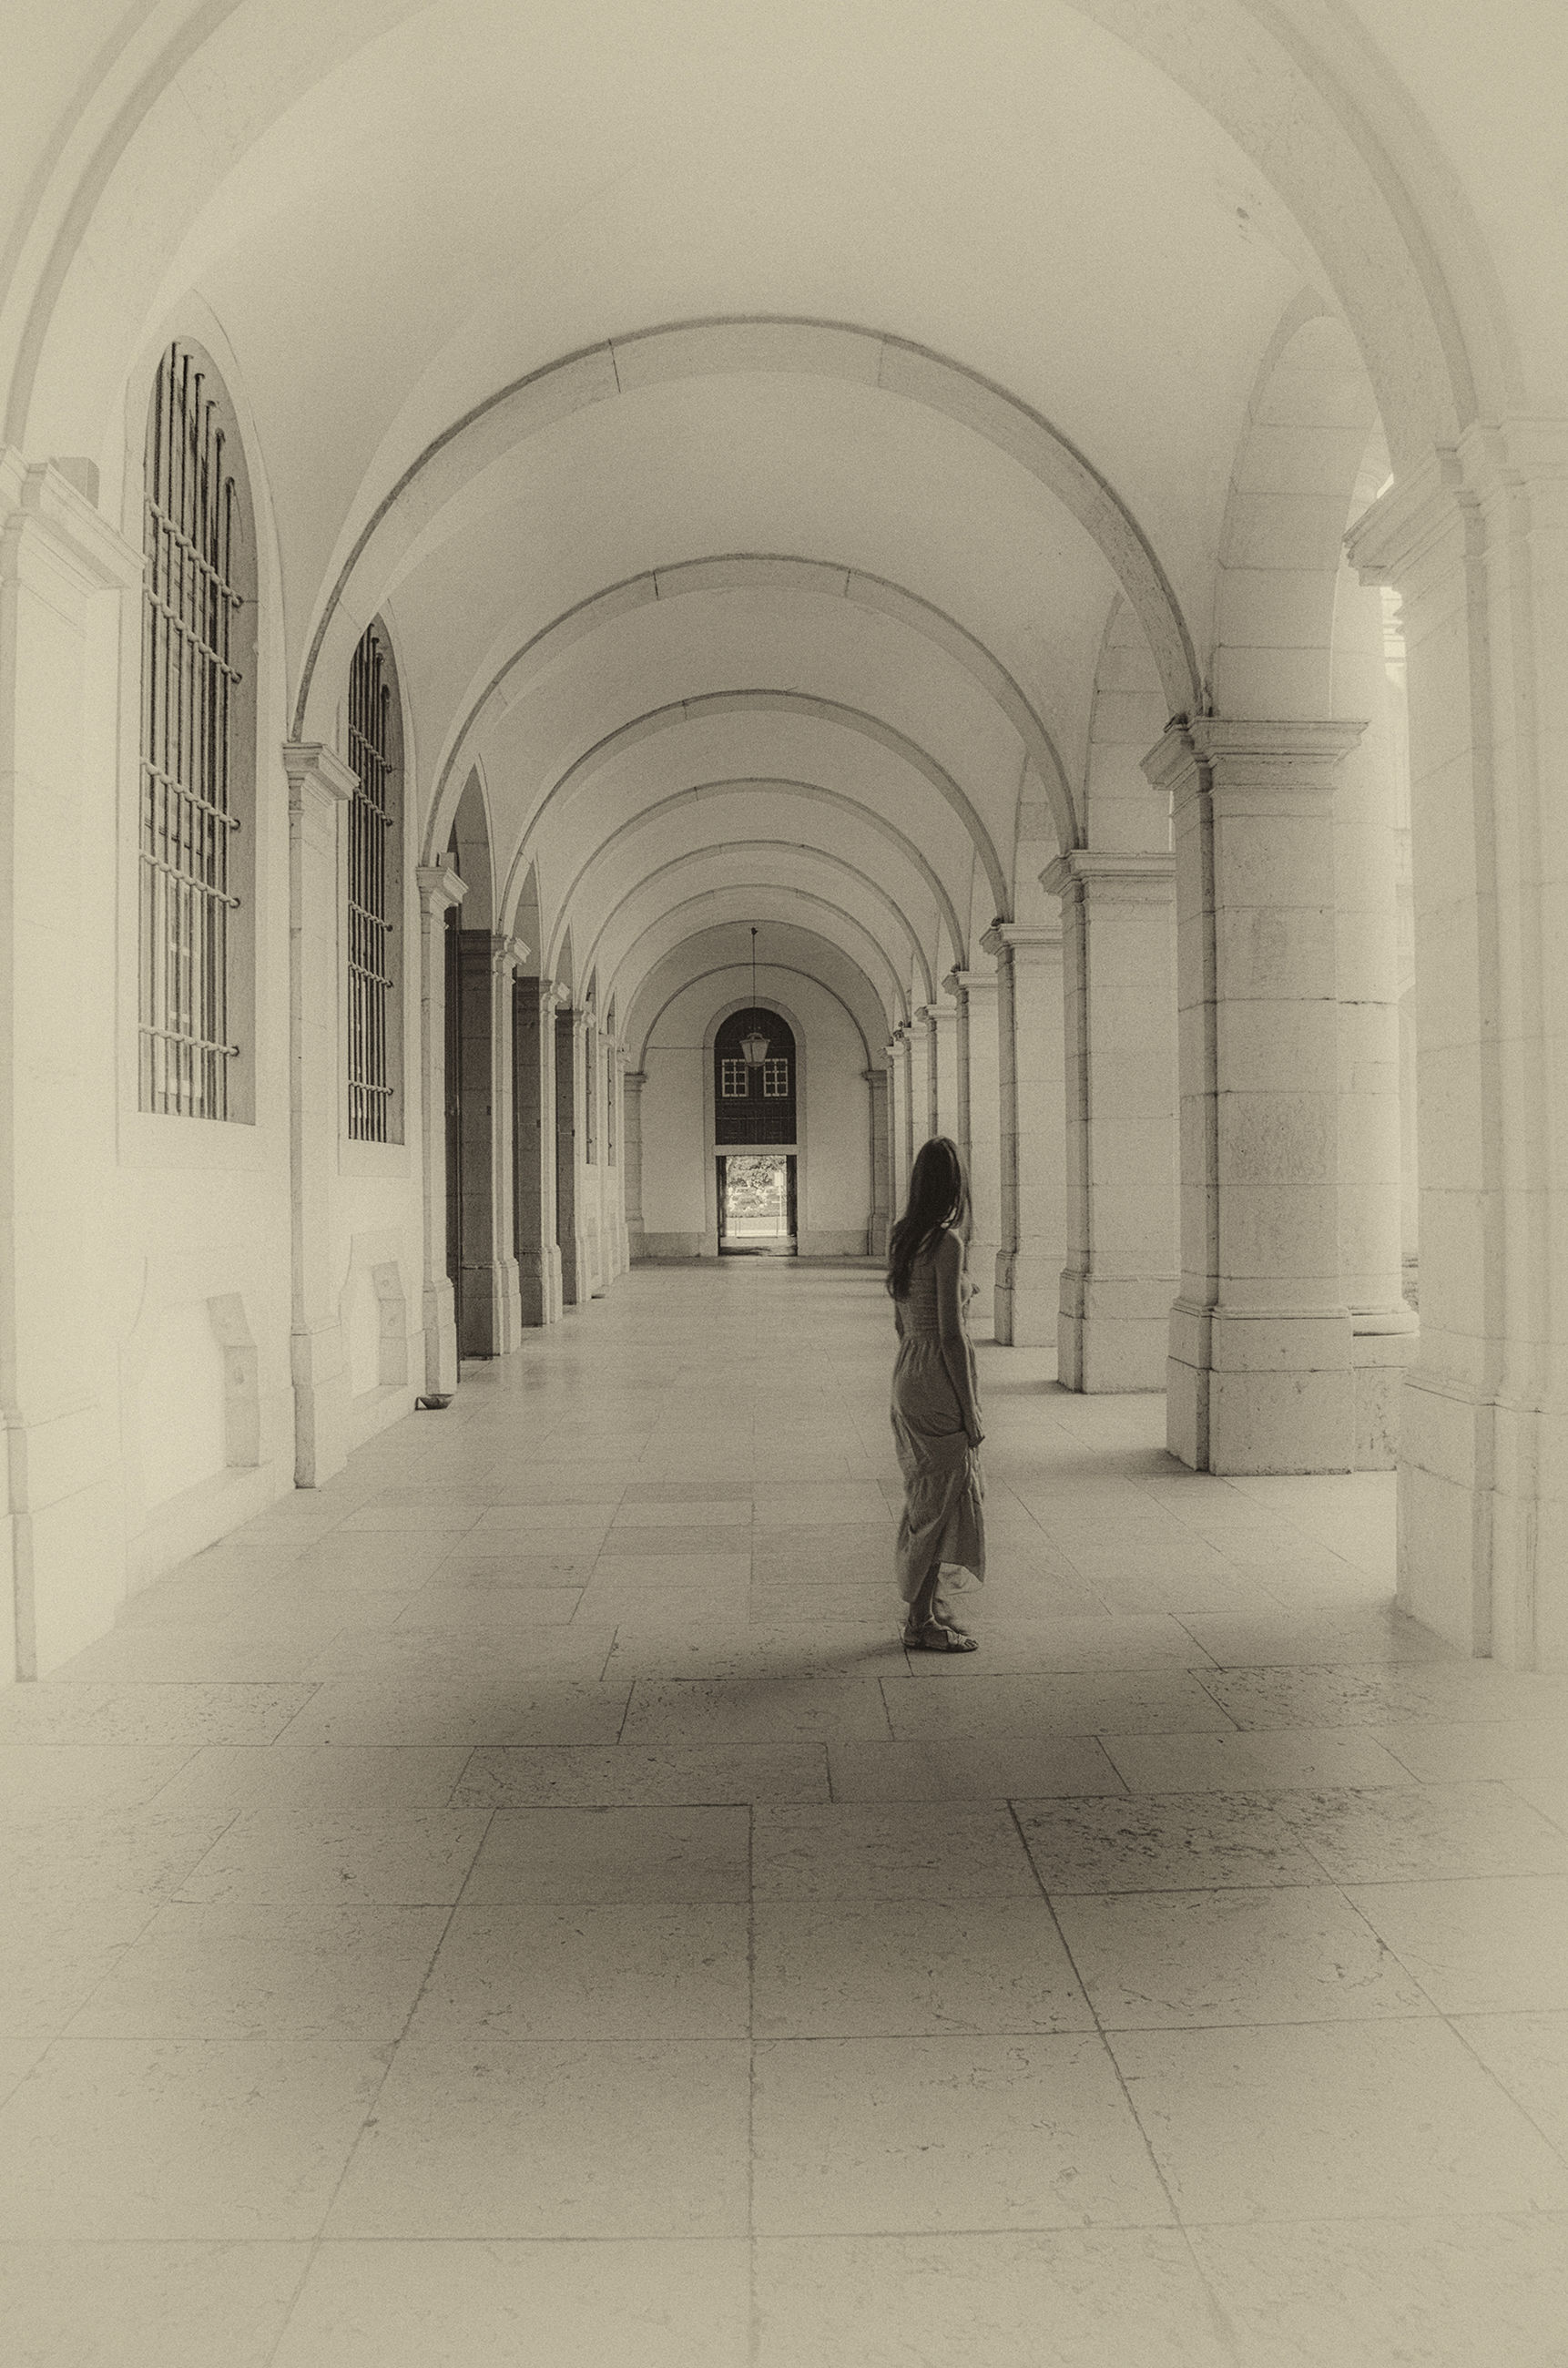 arch, indoors, one person, architecture, real people, full length, corridor, built structure, day, people